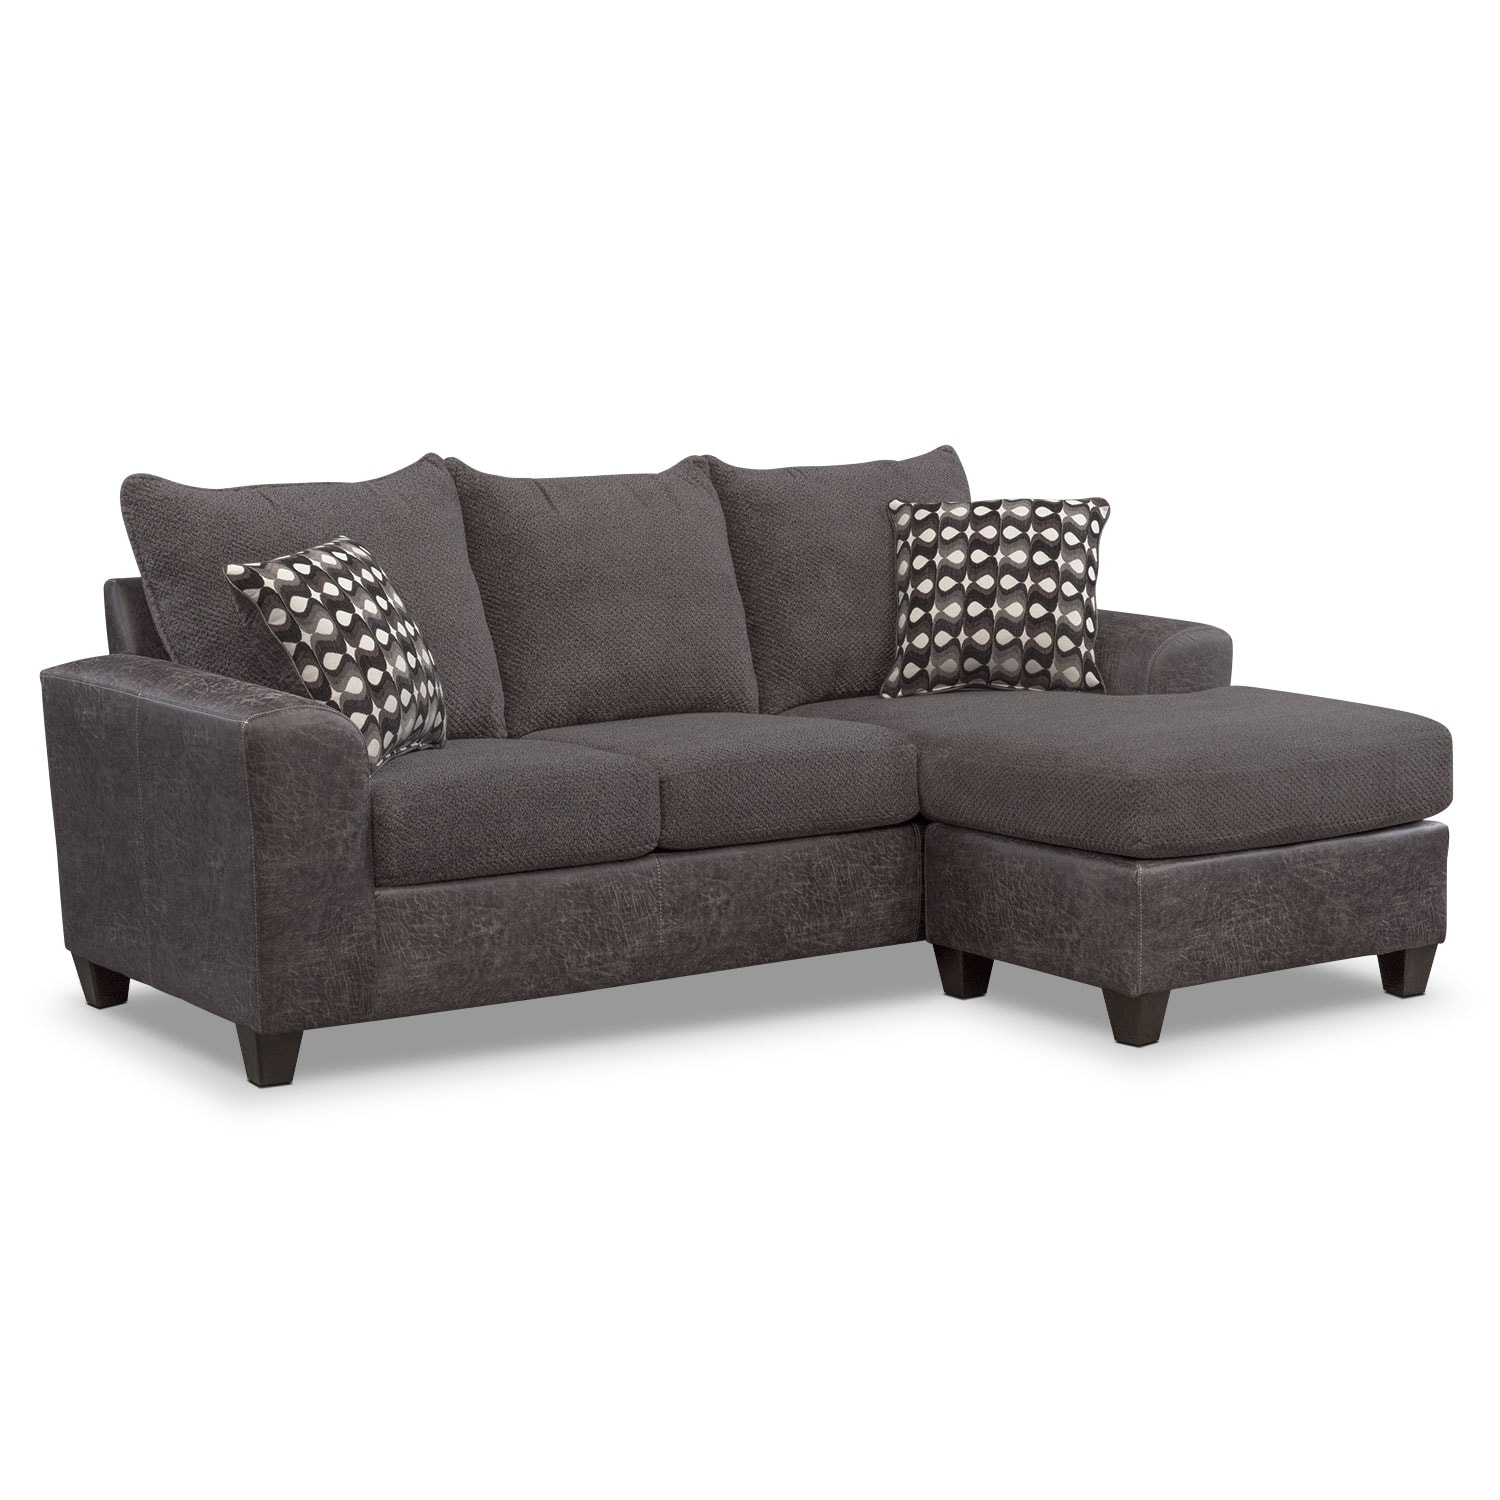 Brando sofa with chaise smoke american signature furniture for Chaise furniture sale